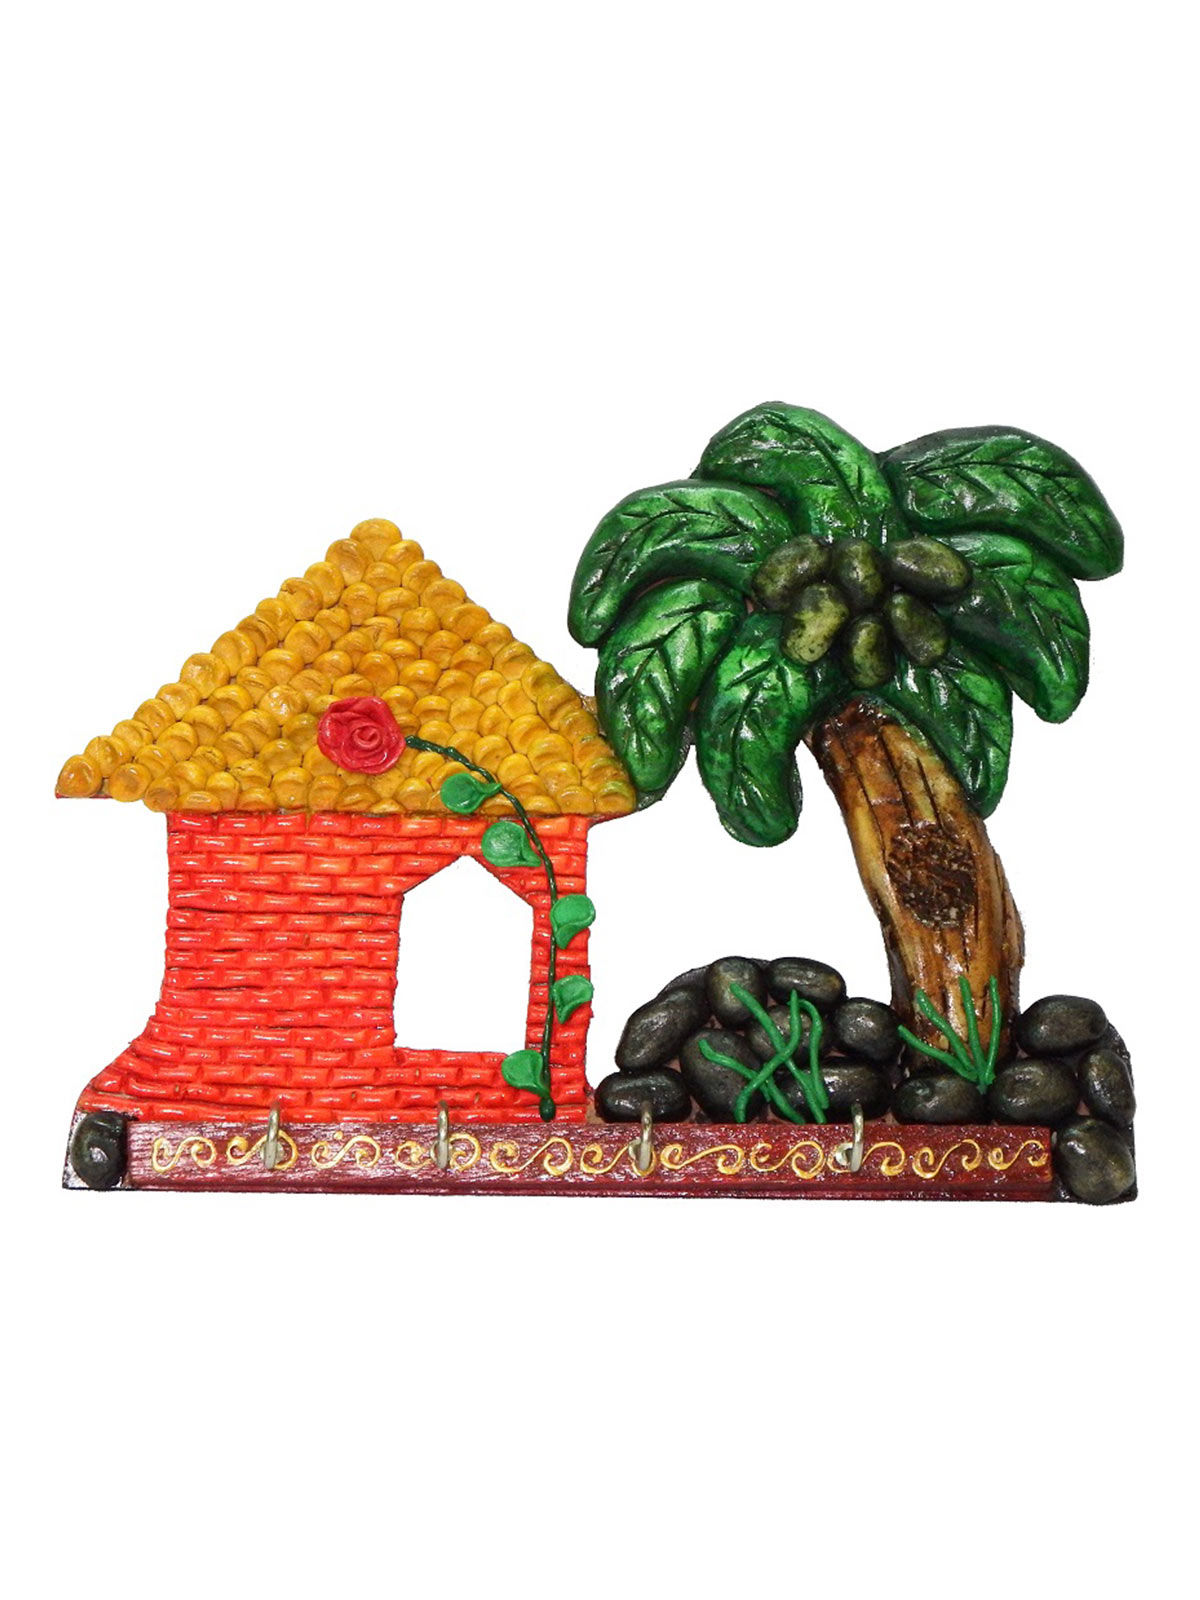 Craftszilla Handcrafted Rajasthani Wooden Hut Key Holder